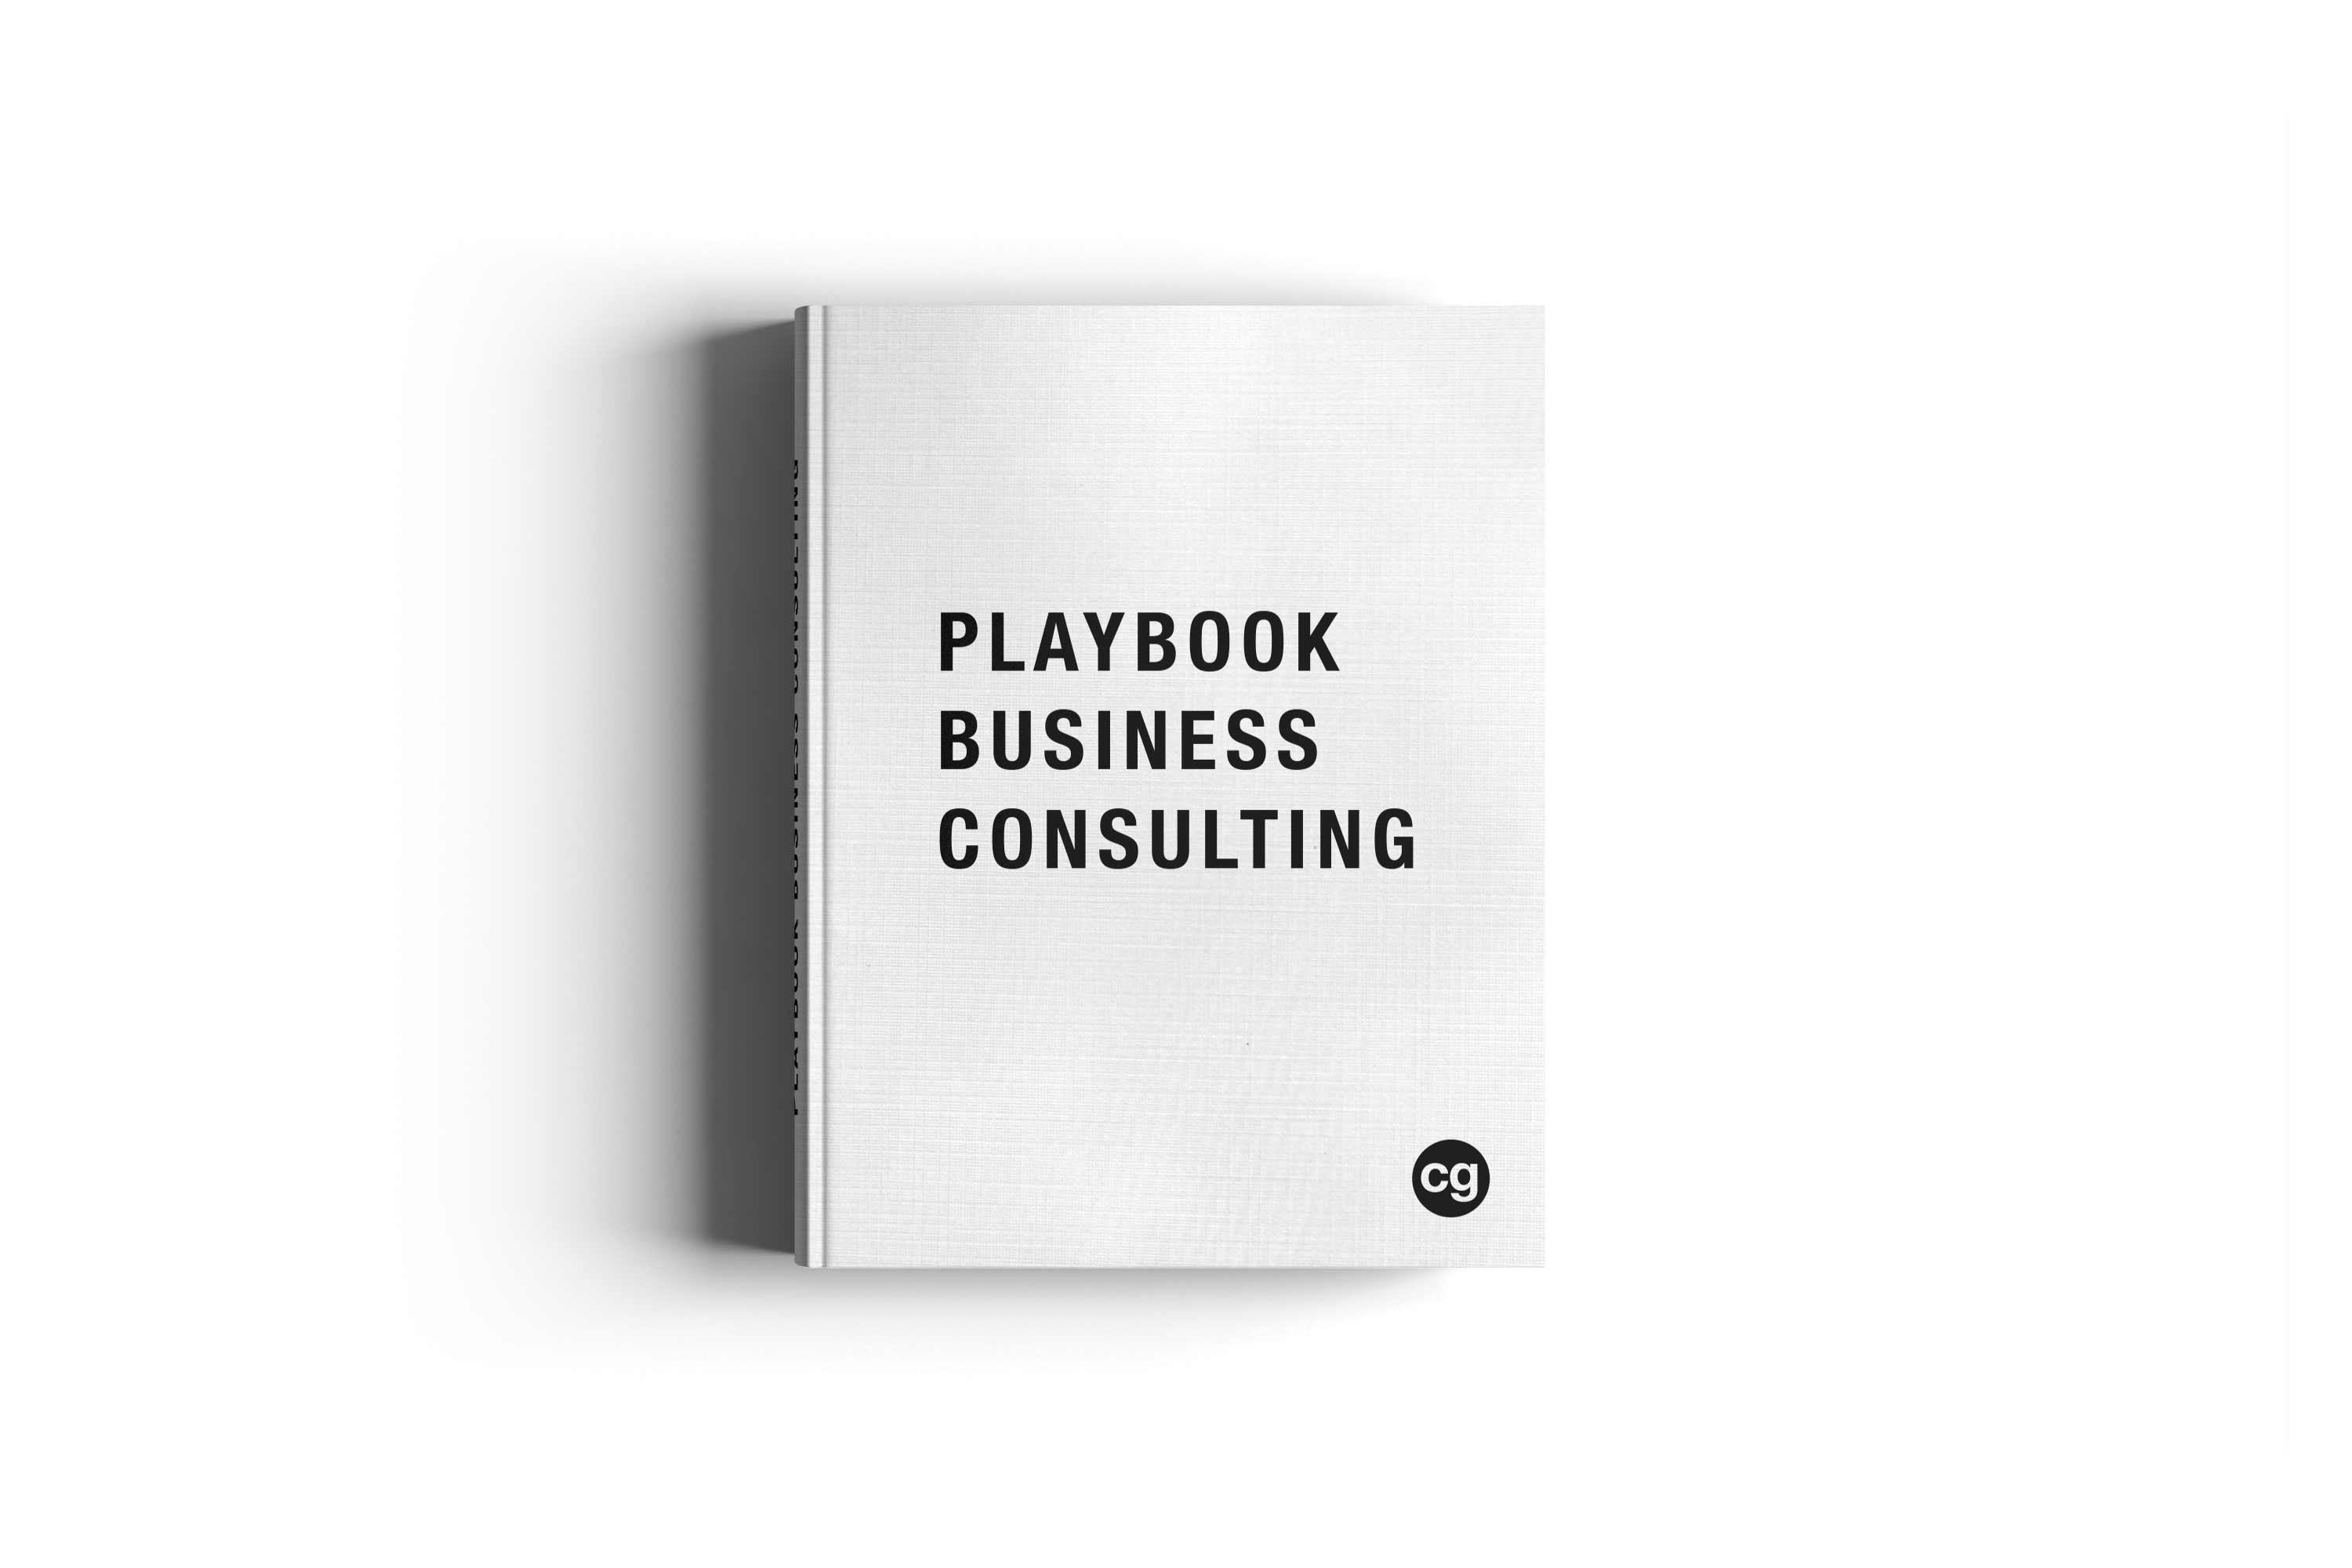 playbook business consulting